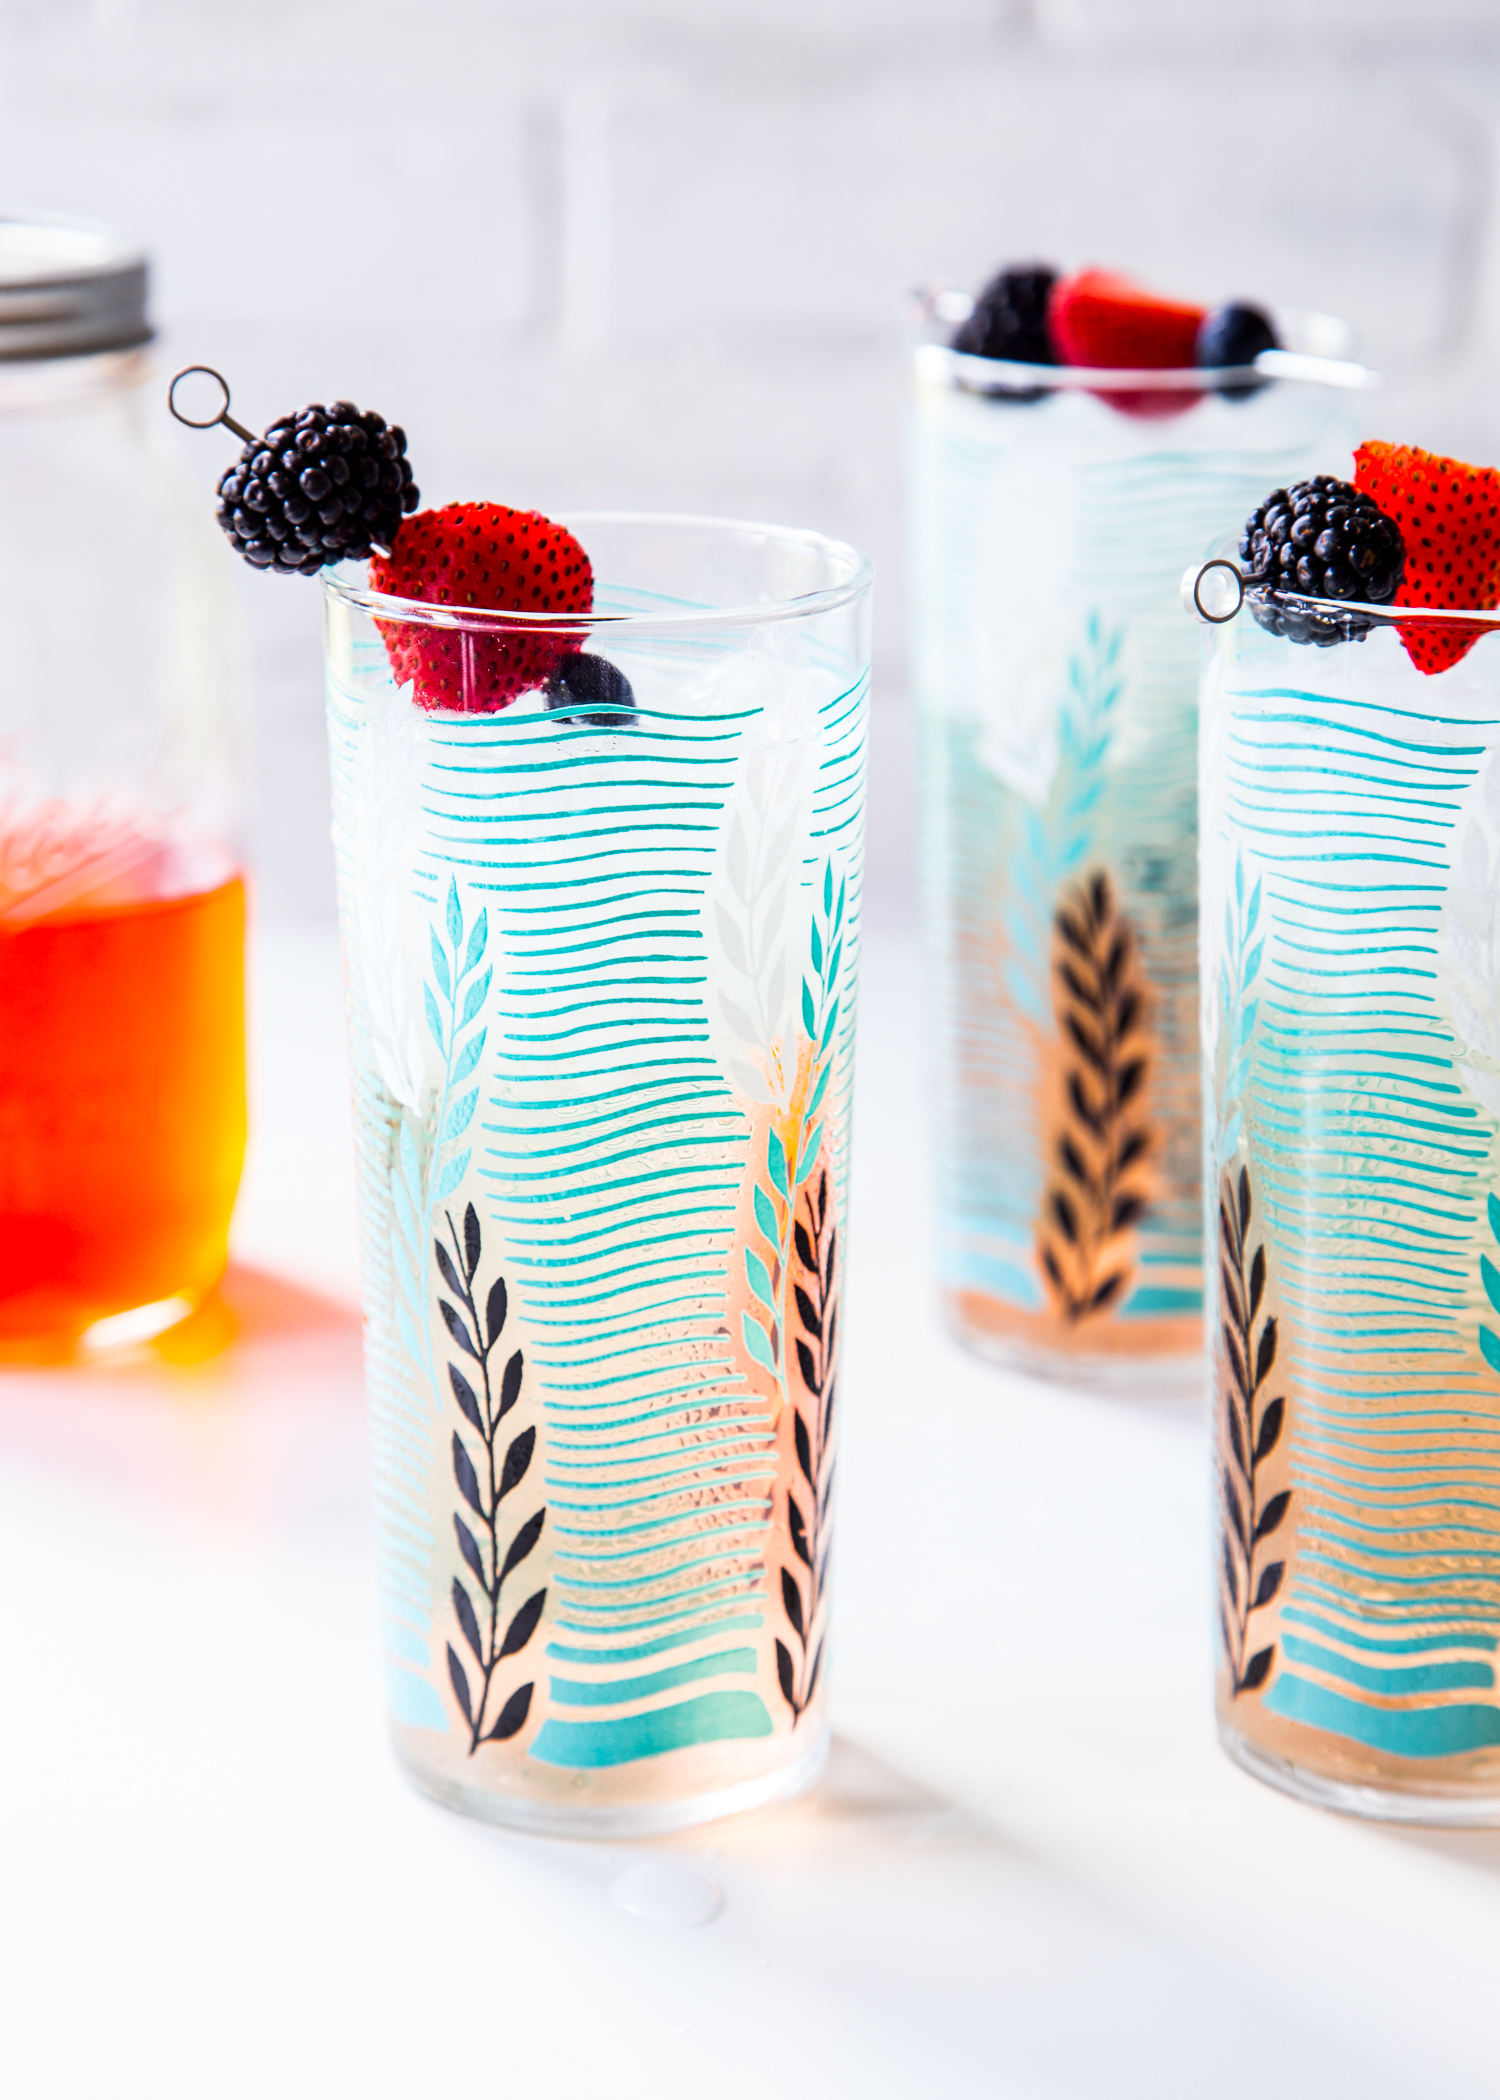 Berry Shrub Spritzer with triple berry shrub syrup and prosecco - refreshing and simple summer cocktail